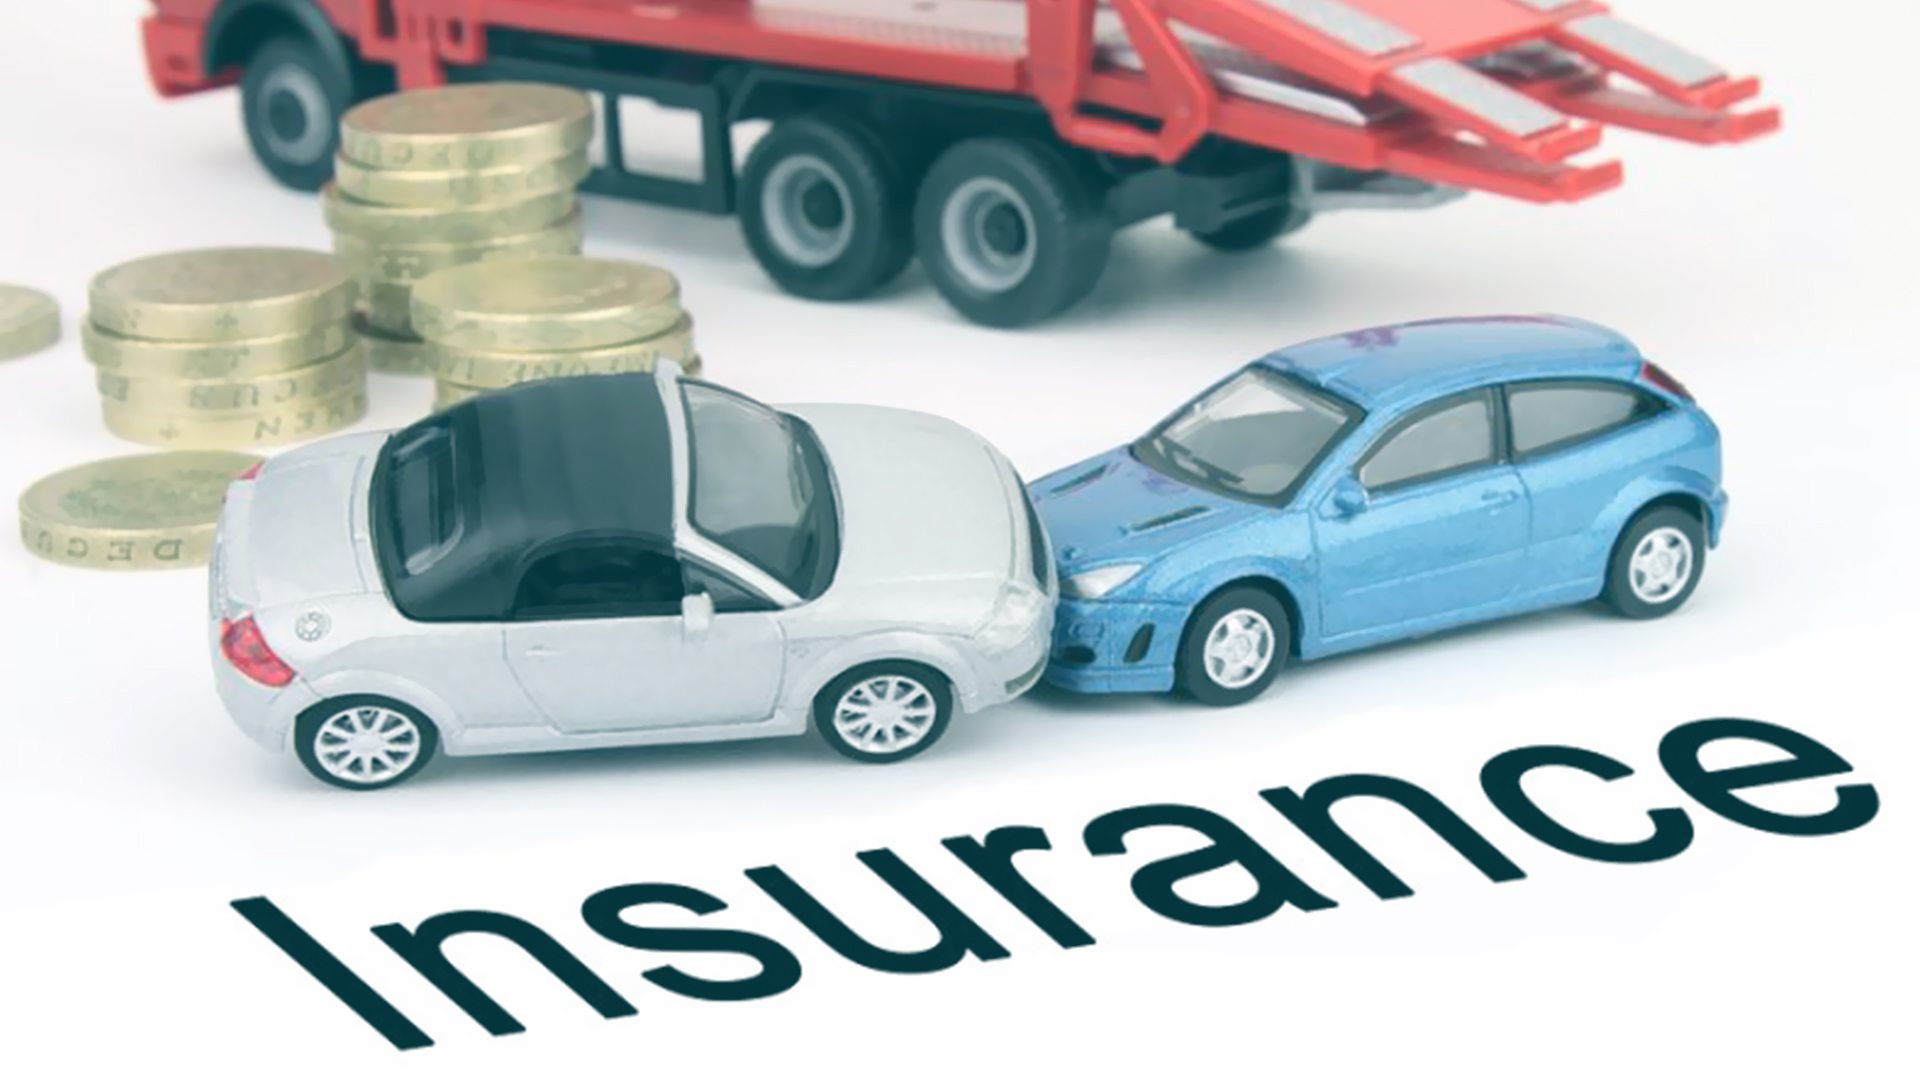 Read The Risks Involved While Driving A Car Which Has An Expired Policy Or Is Uninsured